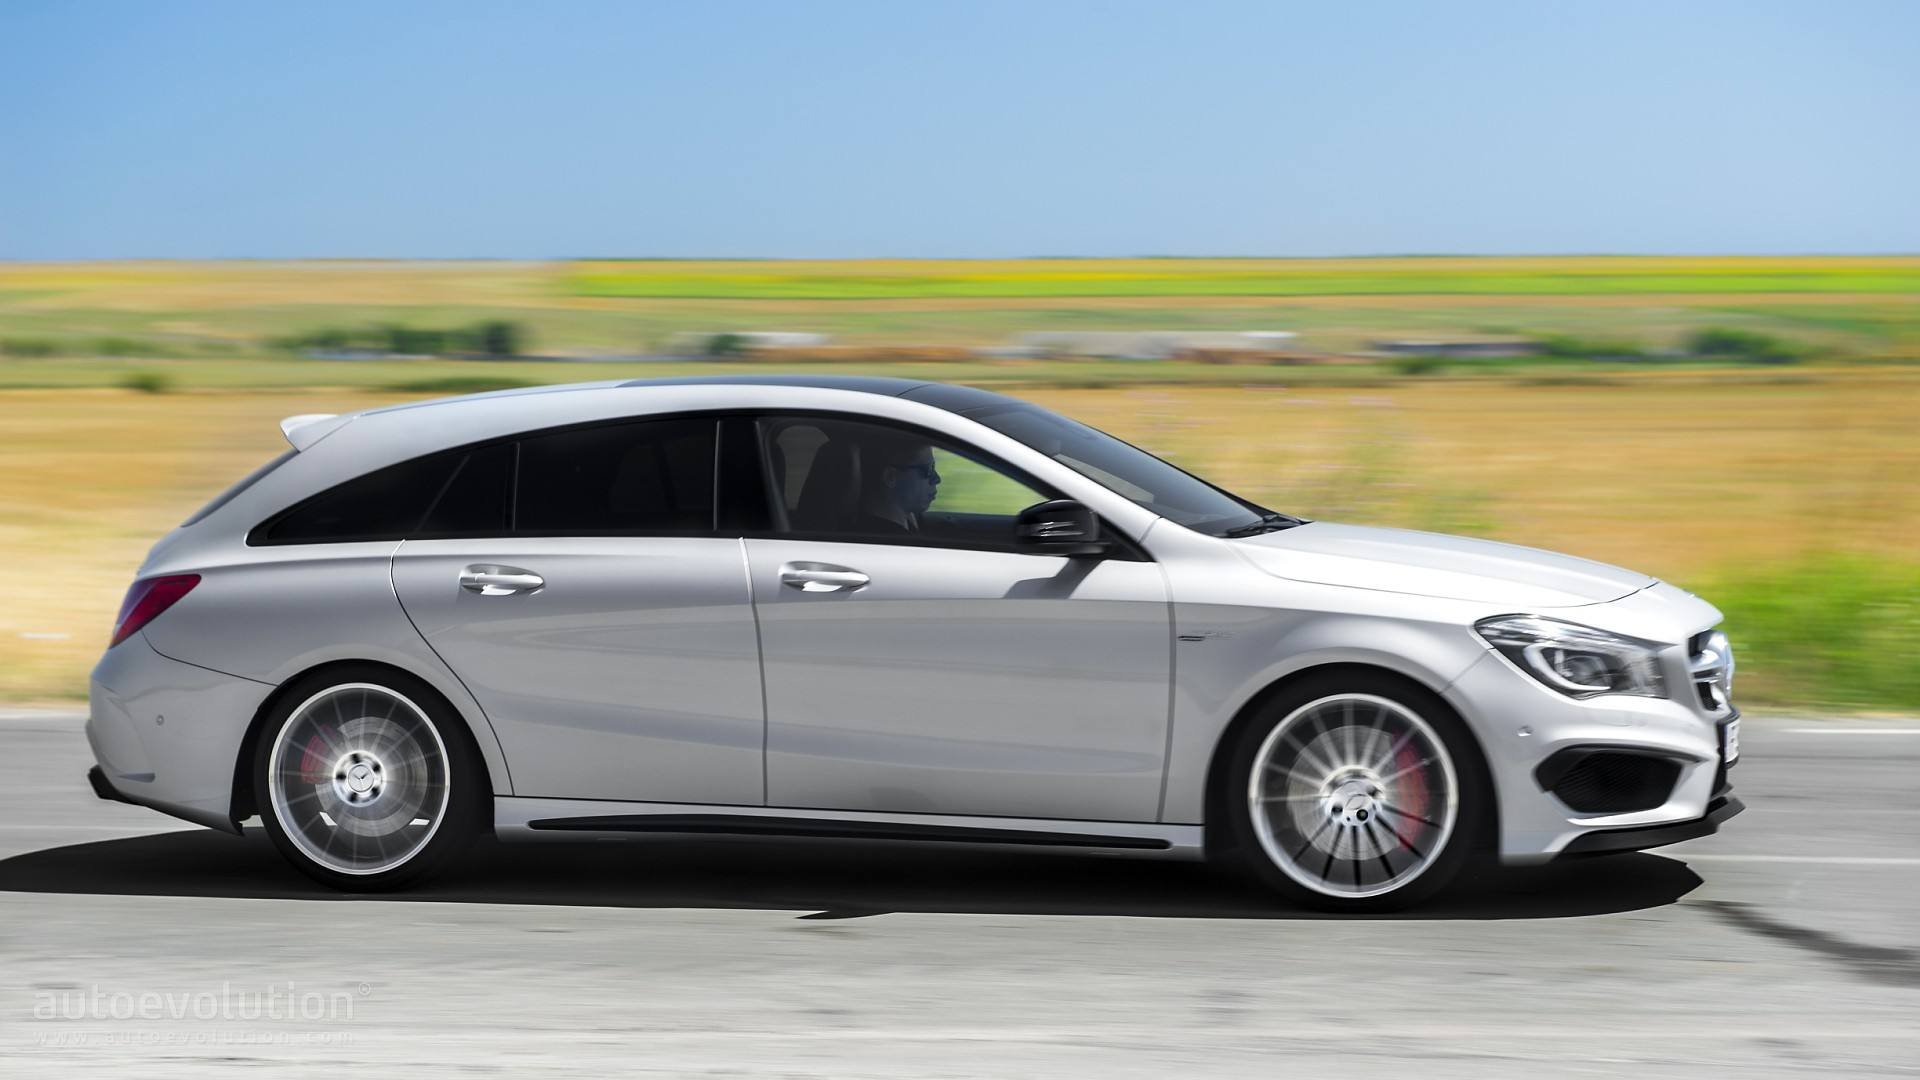 http://s1.cdn.autoevolution.com/images/testdrive/gallery/mercedes-benz-cla45-amg-shooting-brake-review-2015_7.jpg